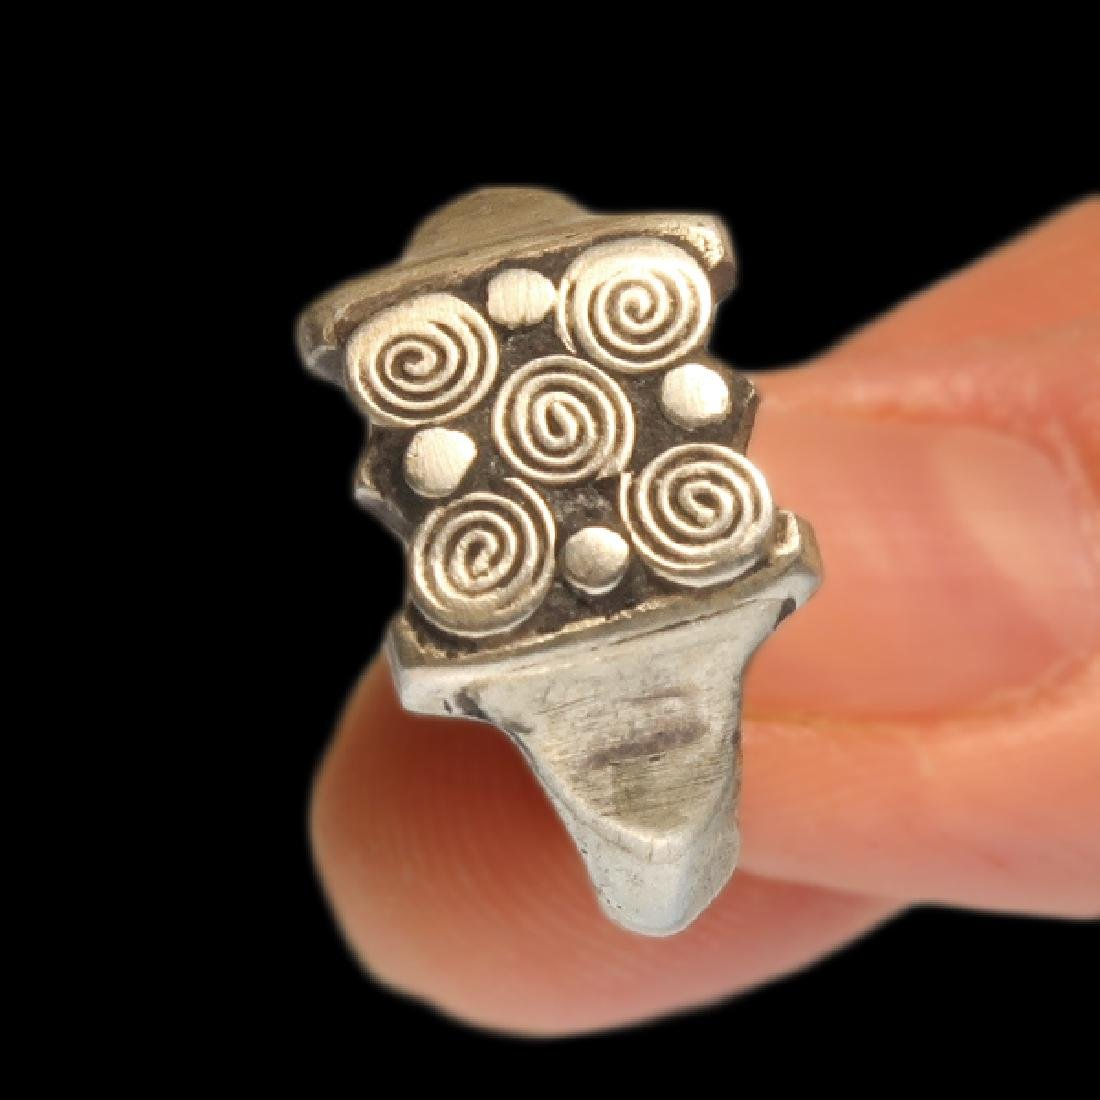 Viking Silver Ring with Spiral Patterns, c. 10th - 3